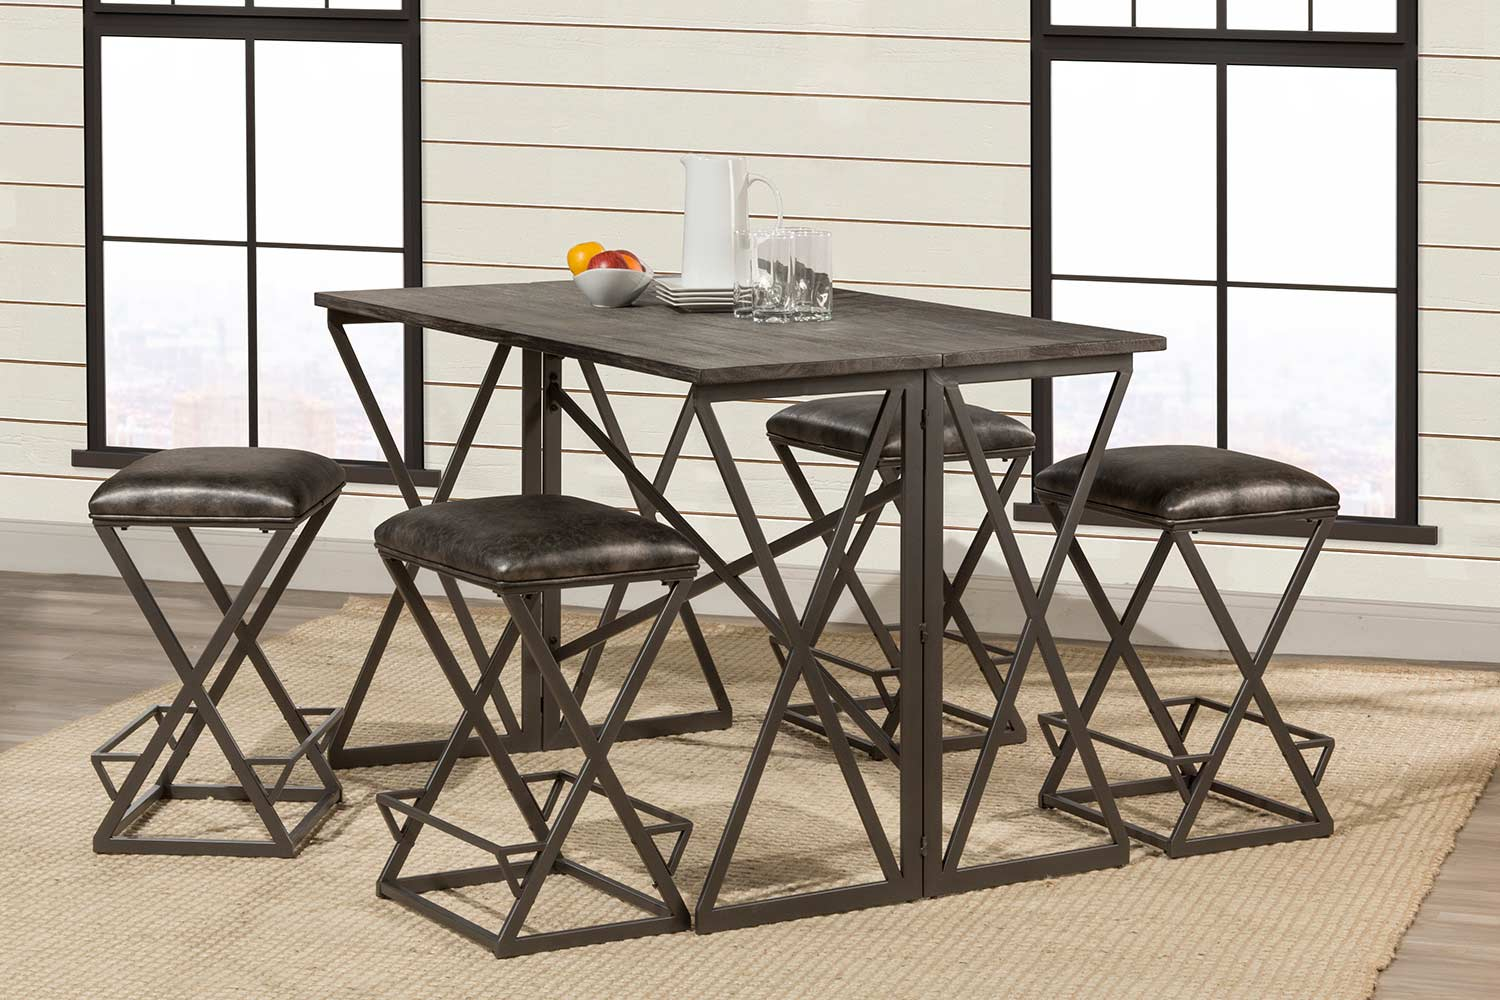 Hillsdale East Glenn 5-Piece Counter Height Dining Set with 4 Kenwell Stools - Charcoal